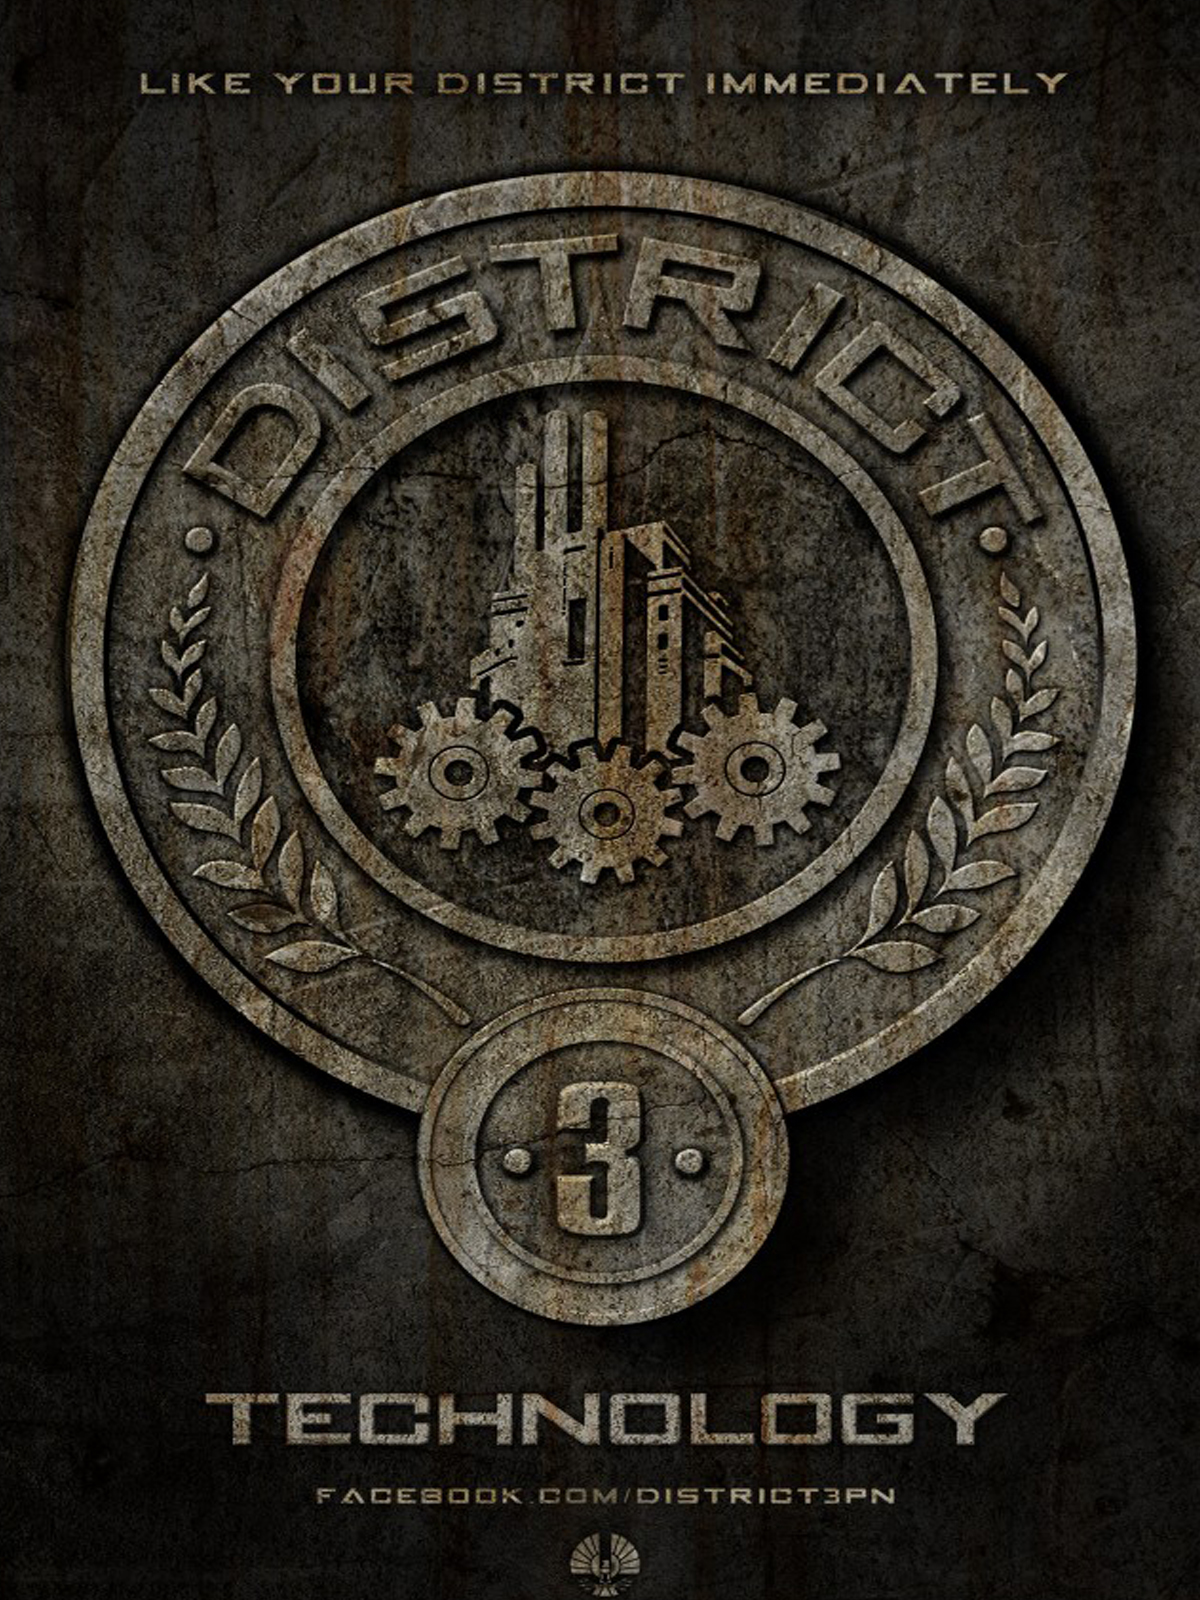 http://2.bp.blogspot.com/-teFdsrQL_aU/T4SIAgZgknI/AAAAAAAABQQ/TUgJfmo5594/s1600/The_Hunger_Games_District_3_Technology_Poster_HD_Wallpapers-Vvallpaper.Net.jpg